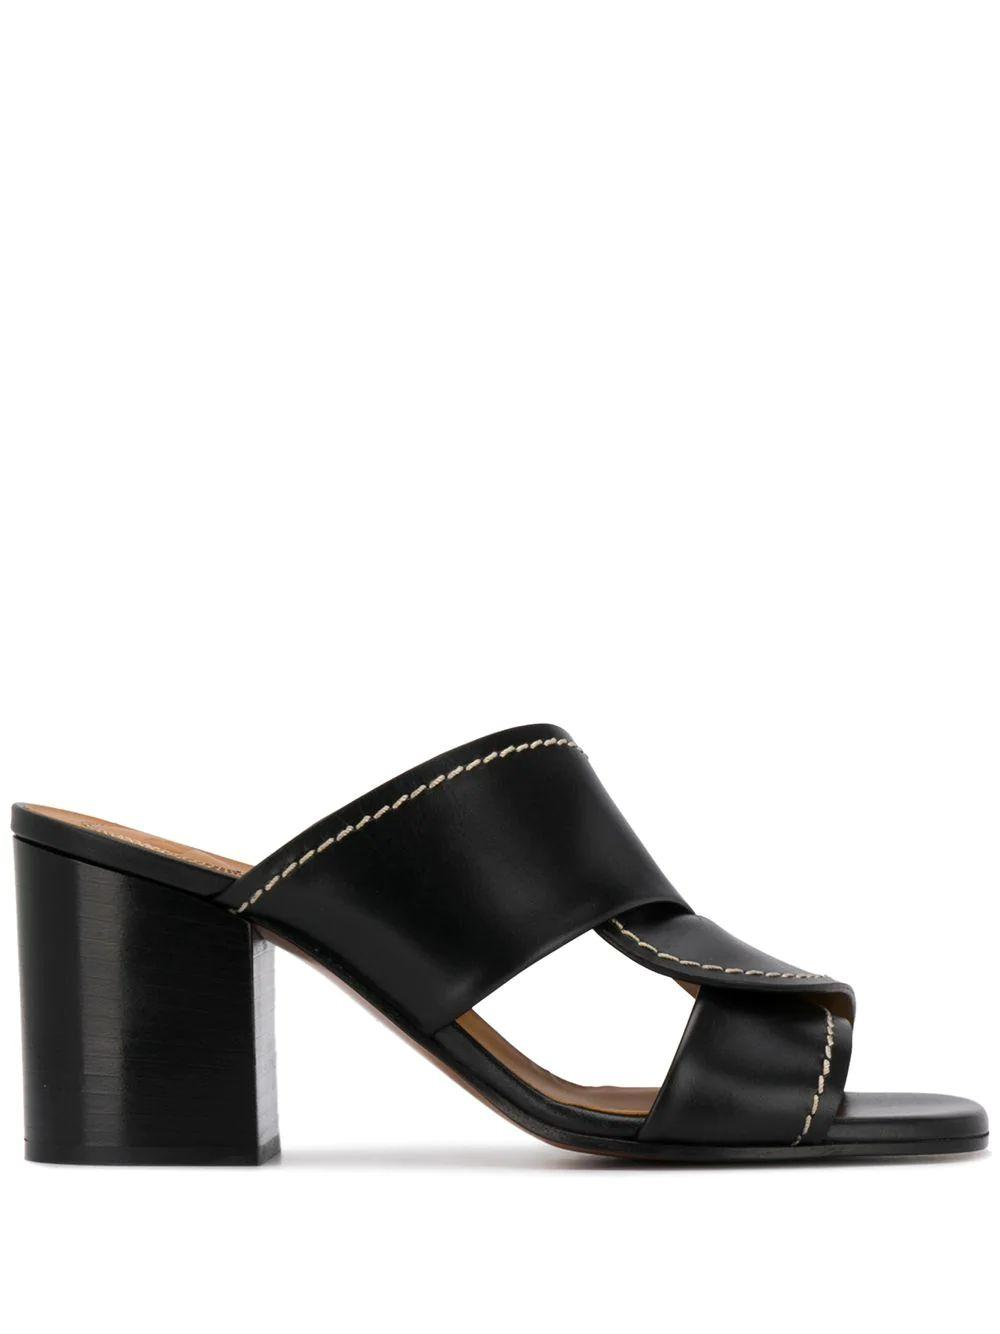 Candice 60mm Slide With Stitch Detail Item # CHC20S27591001